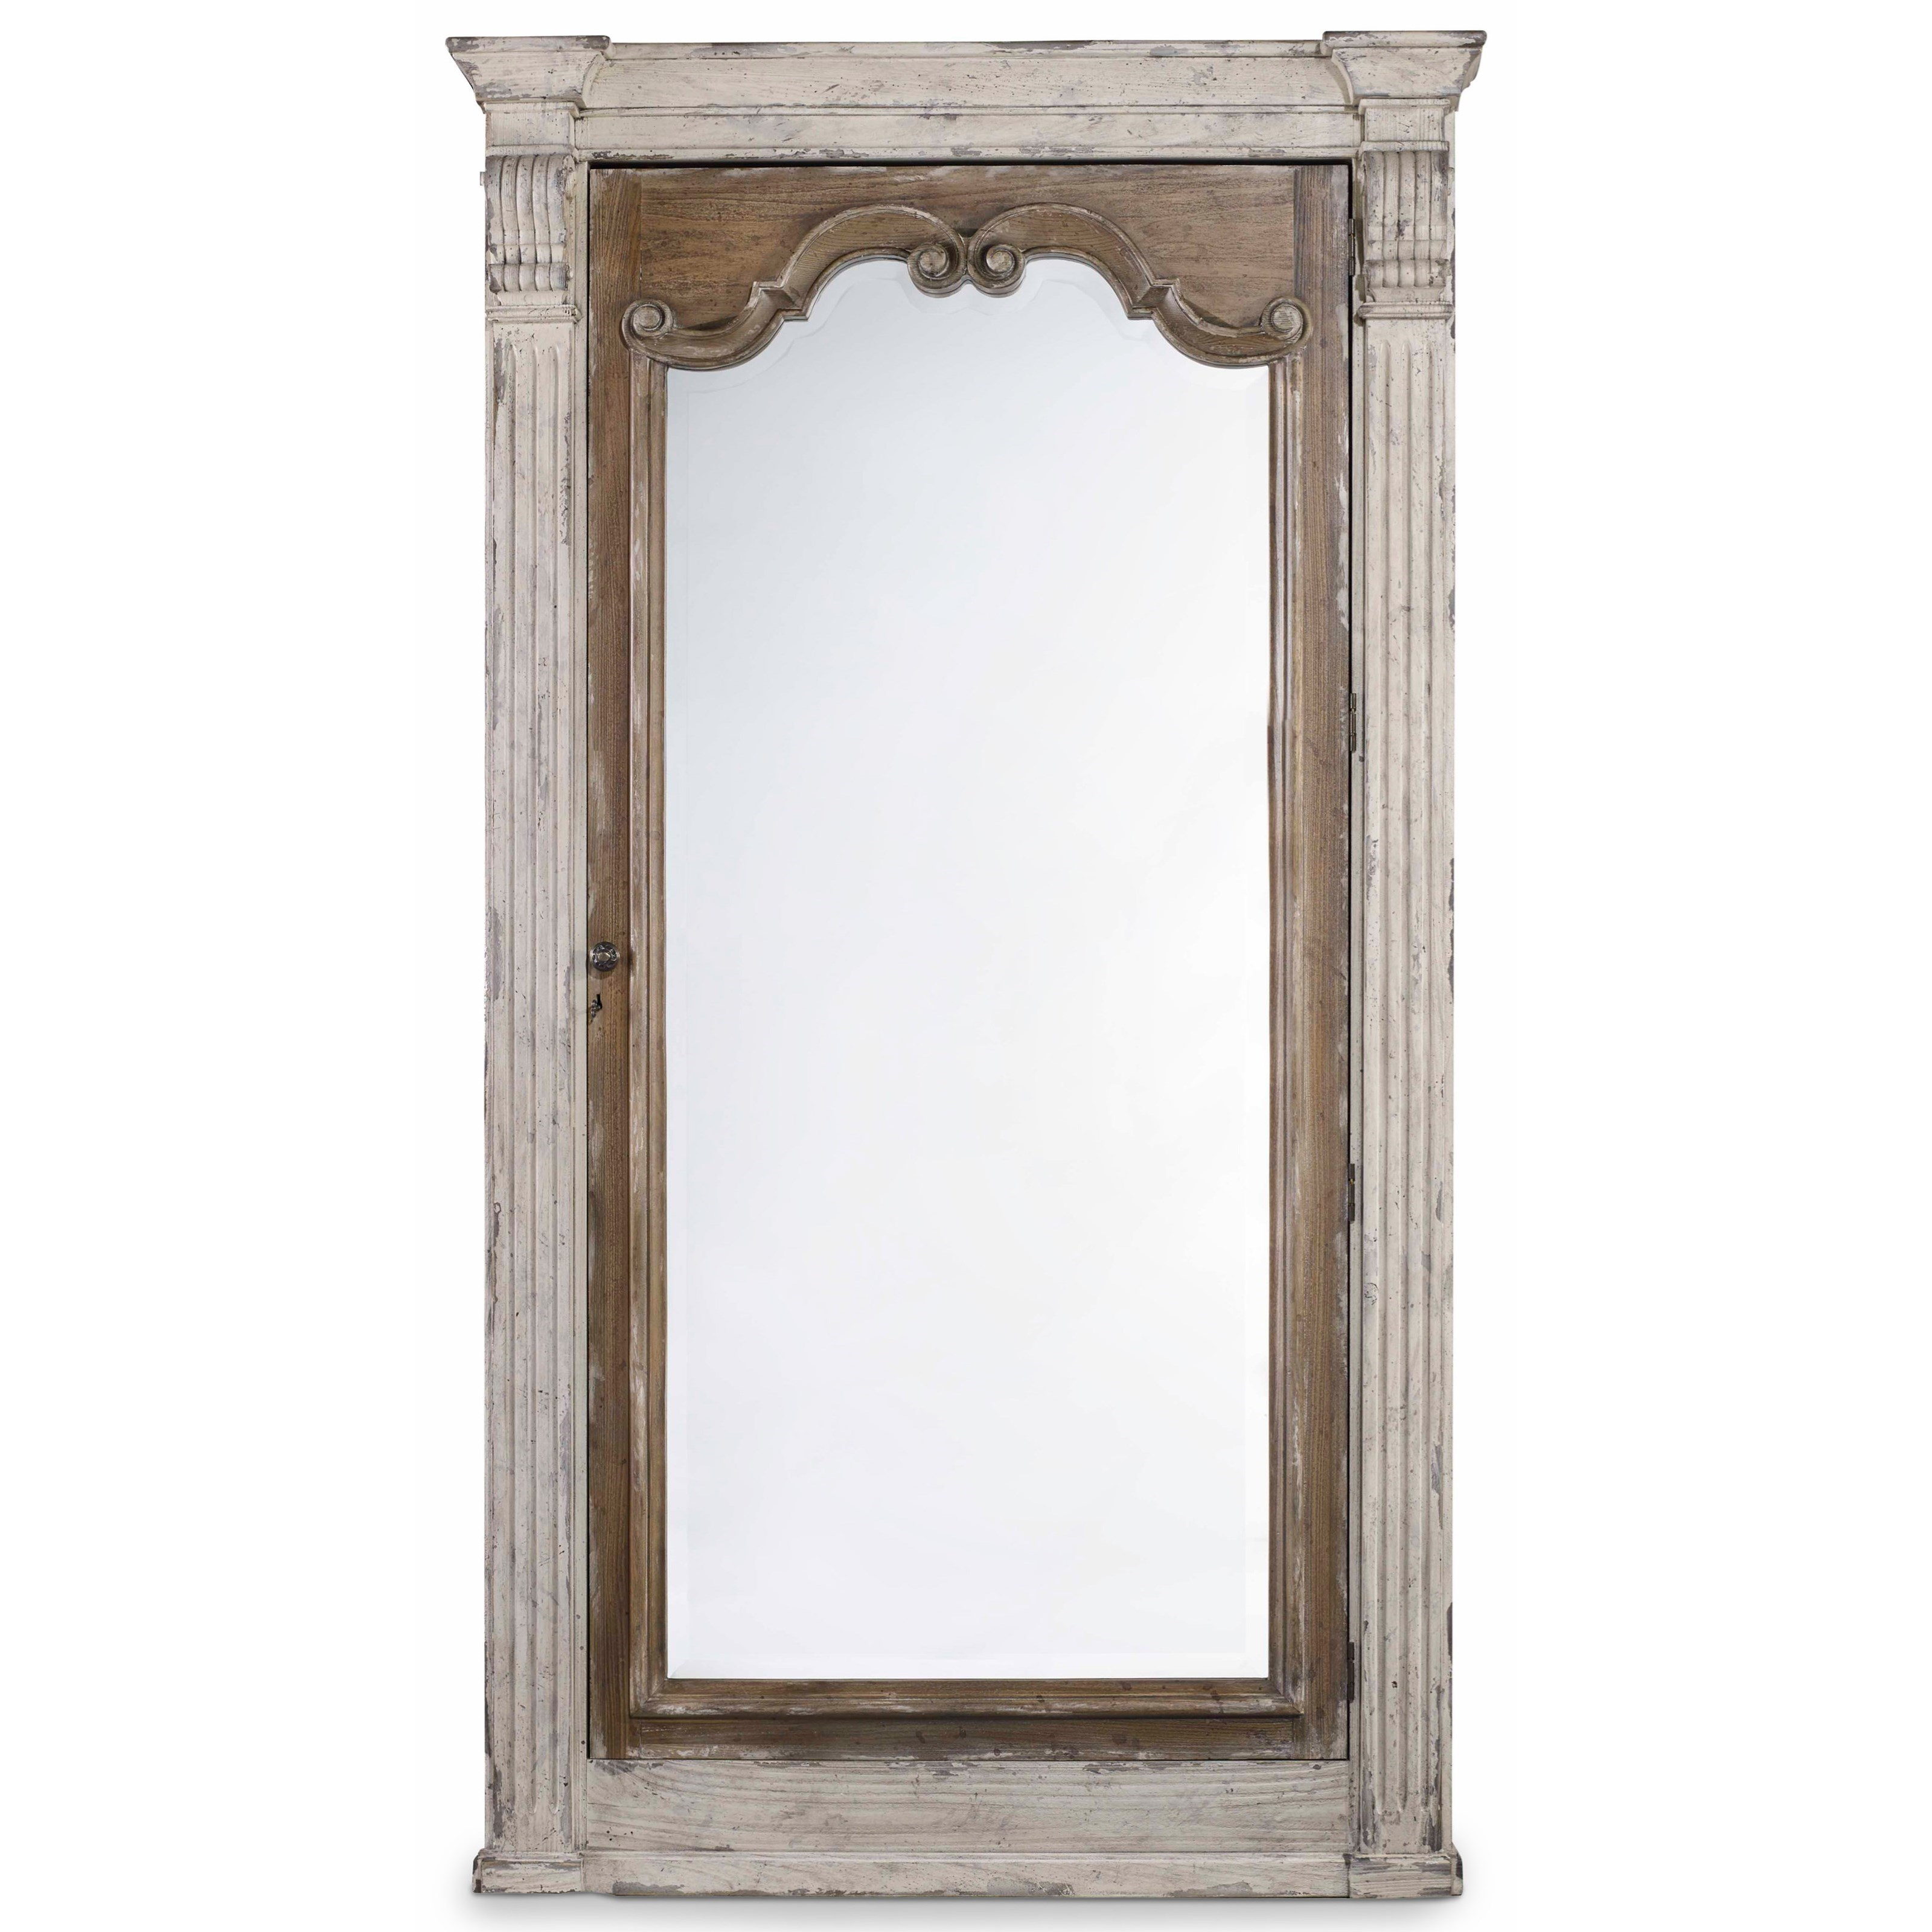 Hooker Furniture Chatelet Floor Mirror with Jewelry Armoire Storage - Item Number: 5351-50003